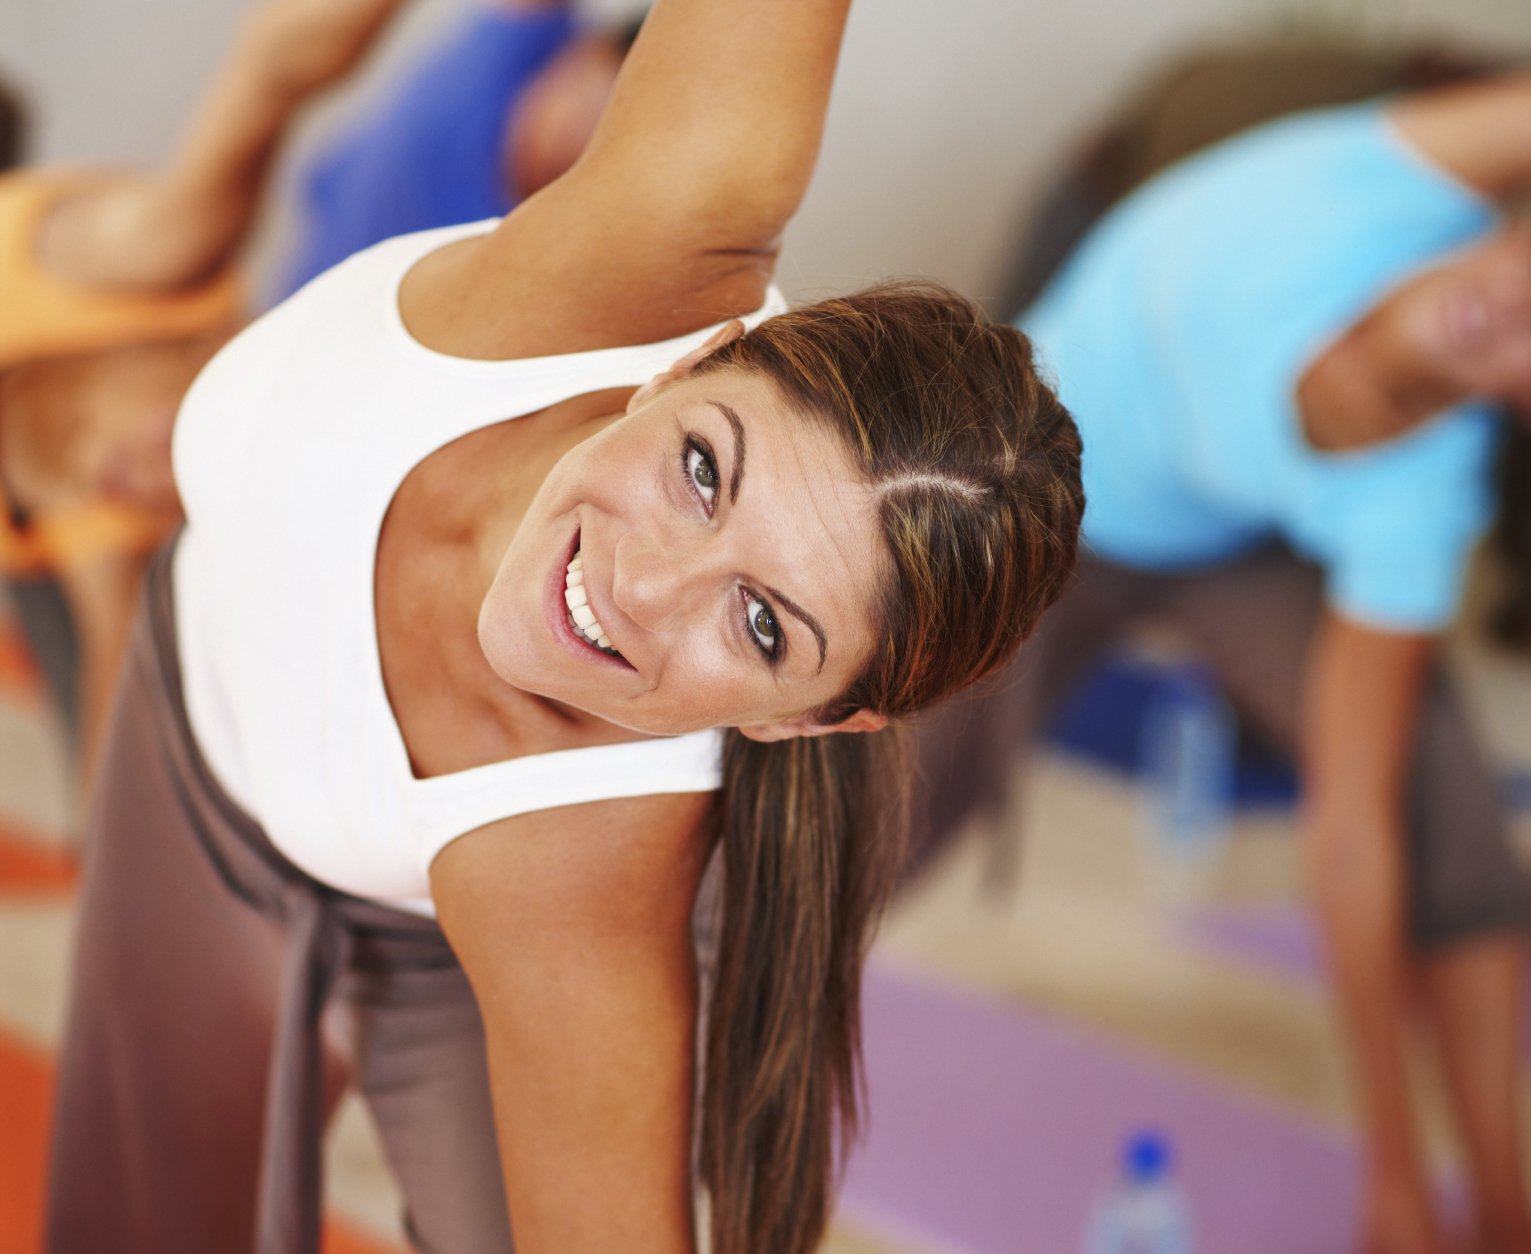 Close up portrait of an attractive woman stretching sideways and smiling at the camera during pilates class